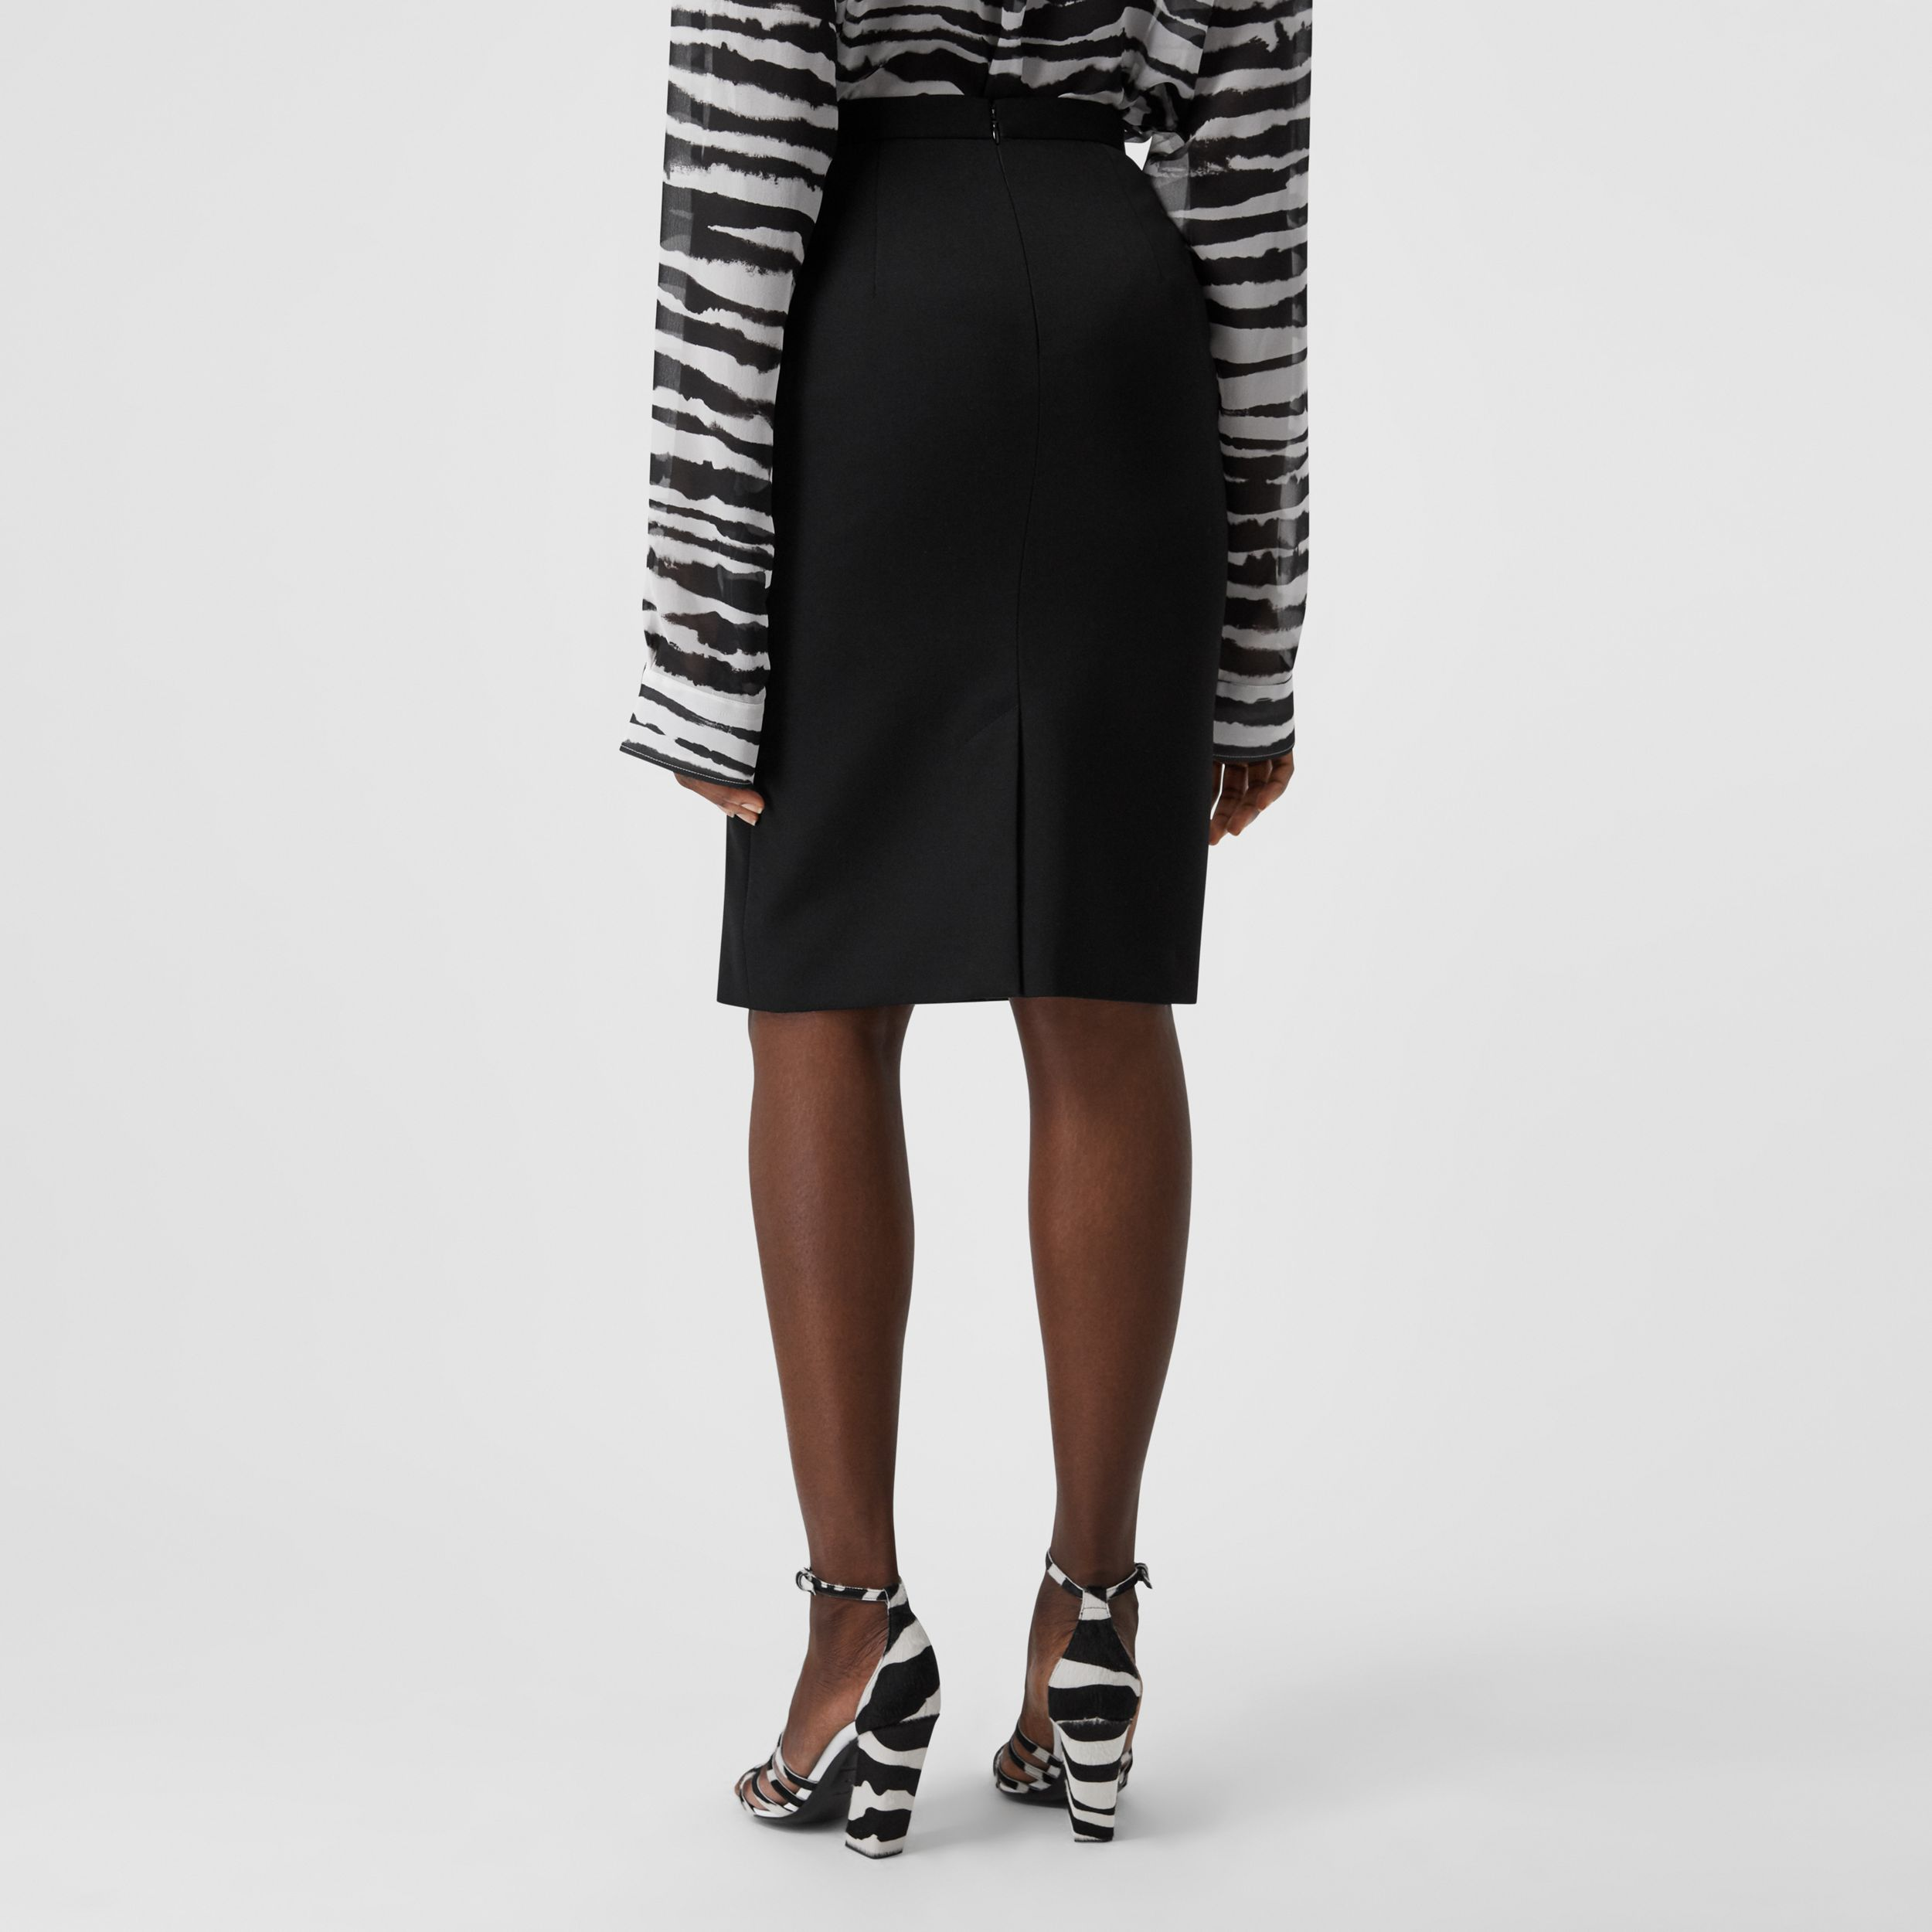 Grain De Poudre Wool Step-through Skirt in Black - Women | Burberry Canada - 3